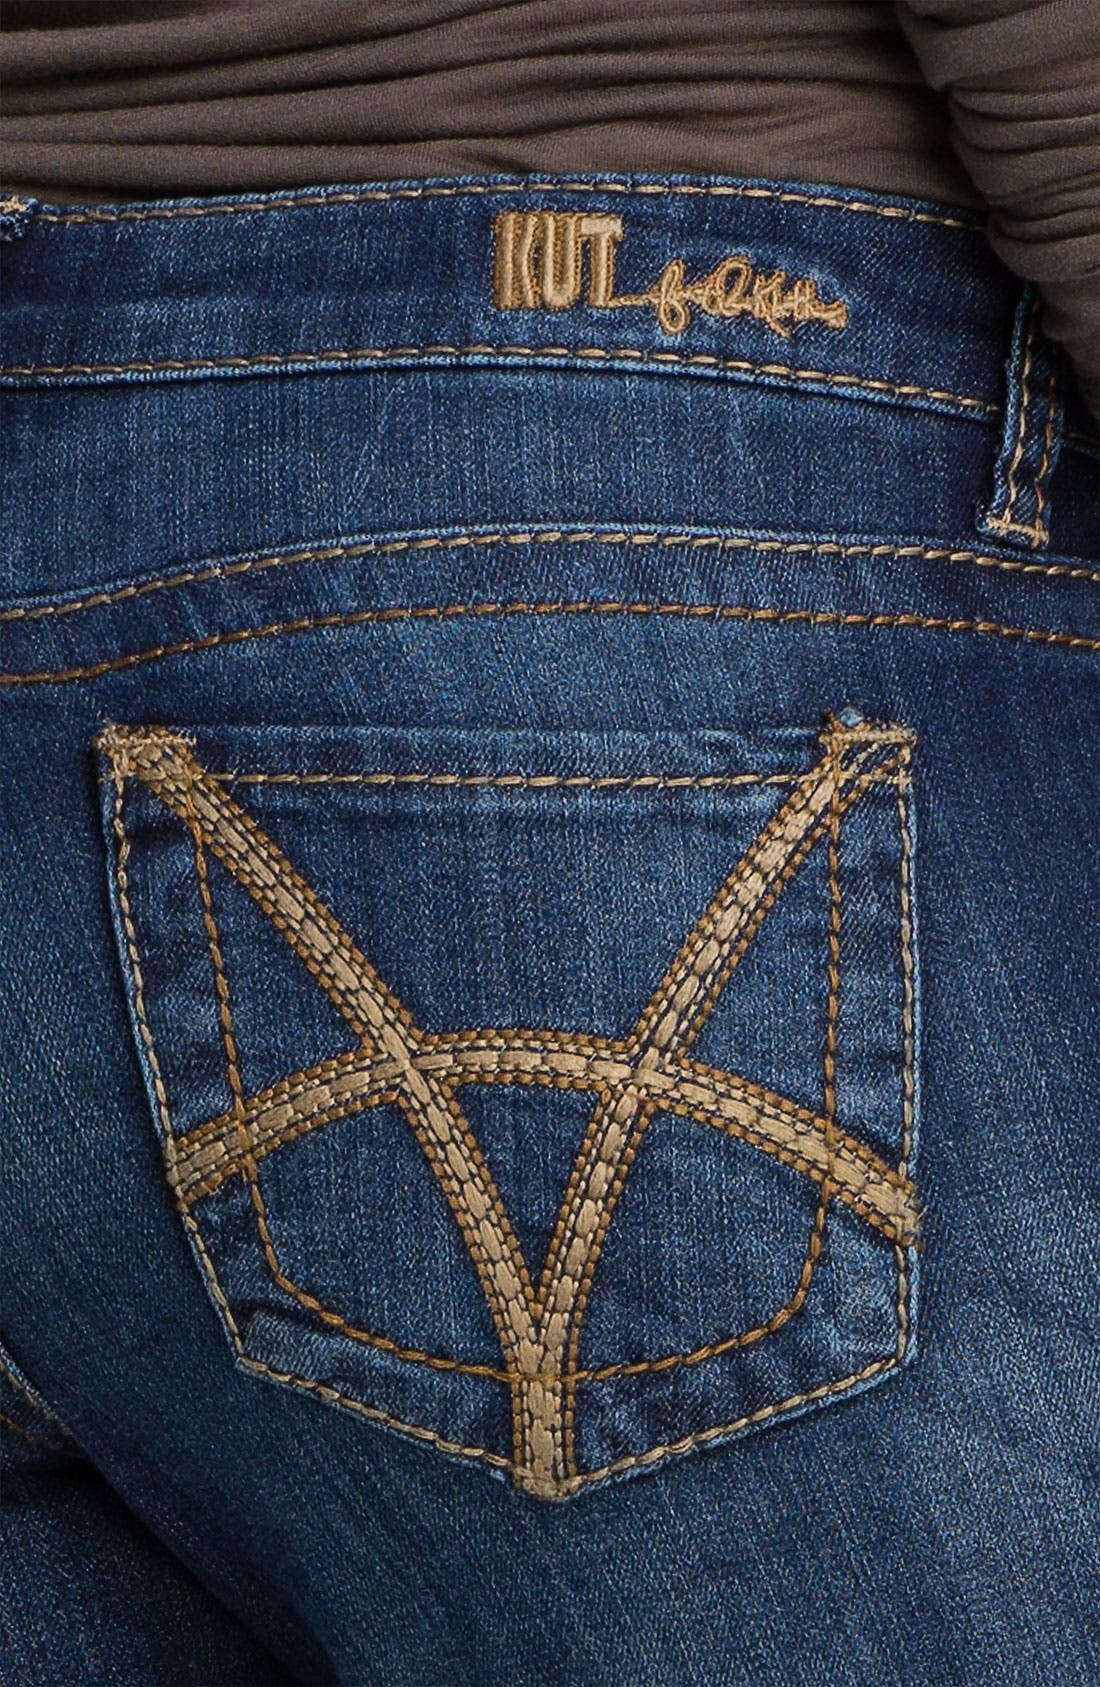 Alternate Image 3  - KUT from the Kloth 'Stevie' Straight Leg Jeans (Gratitude) (Online Only)